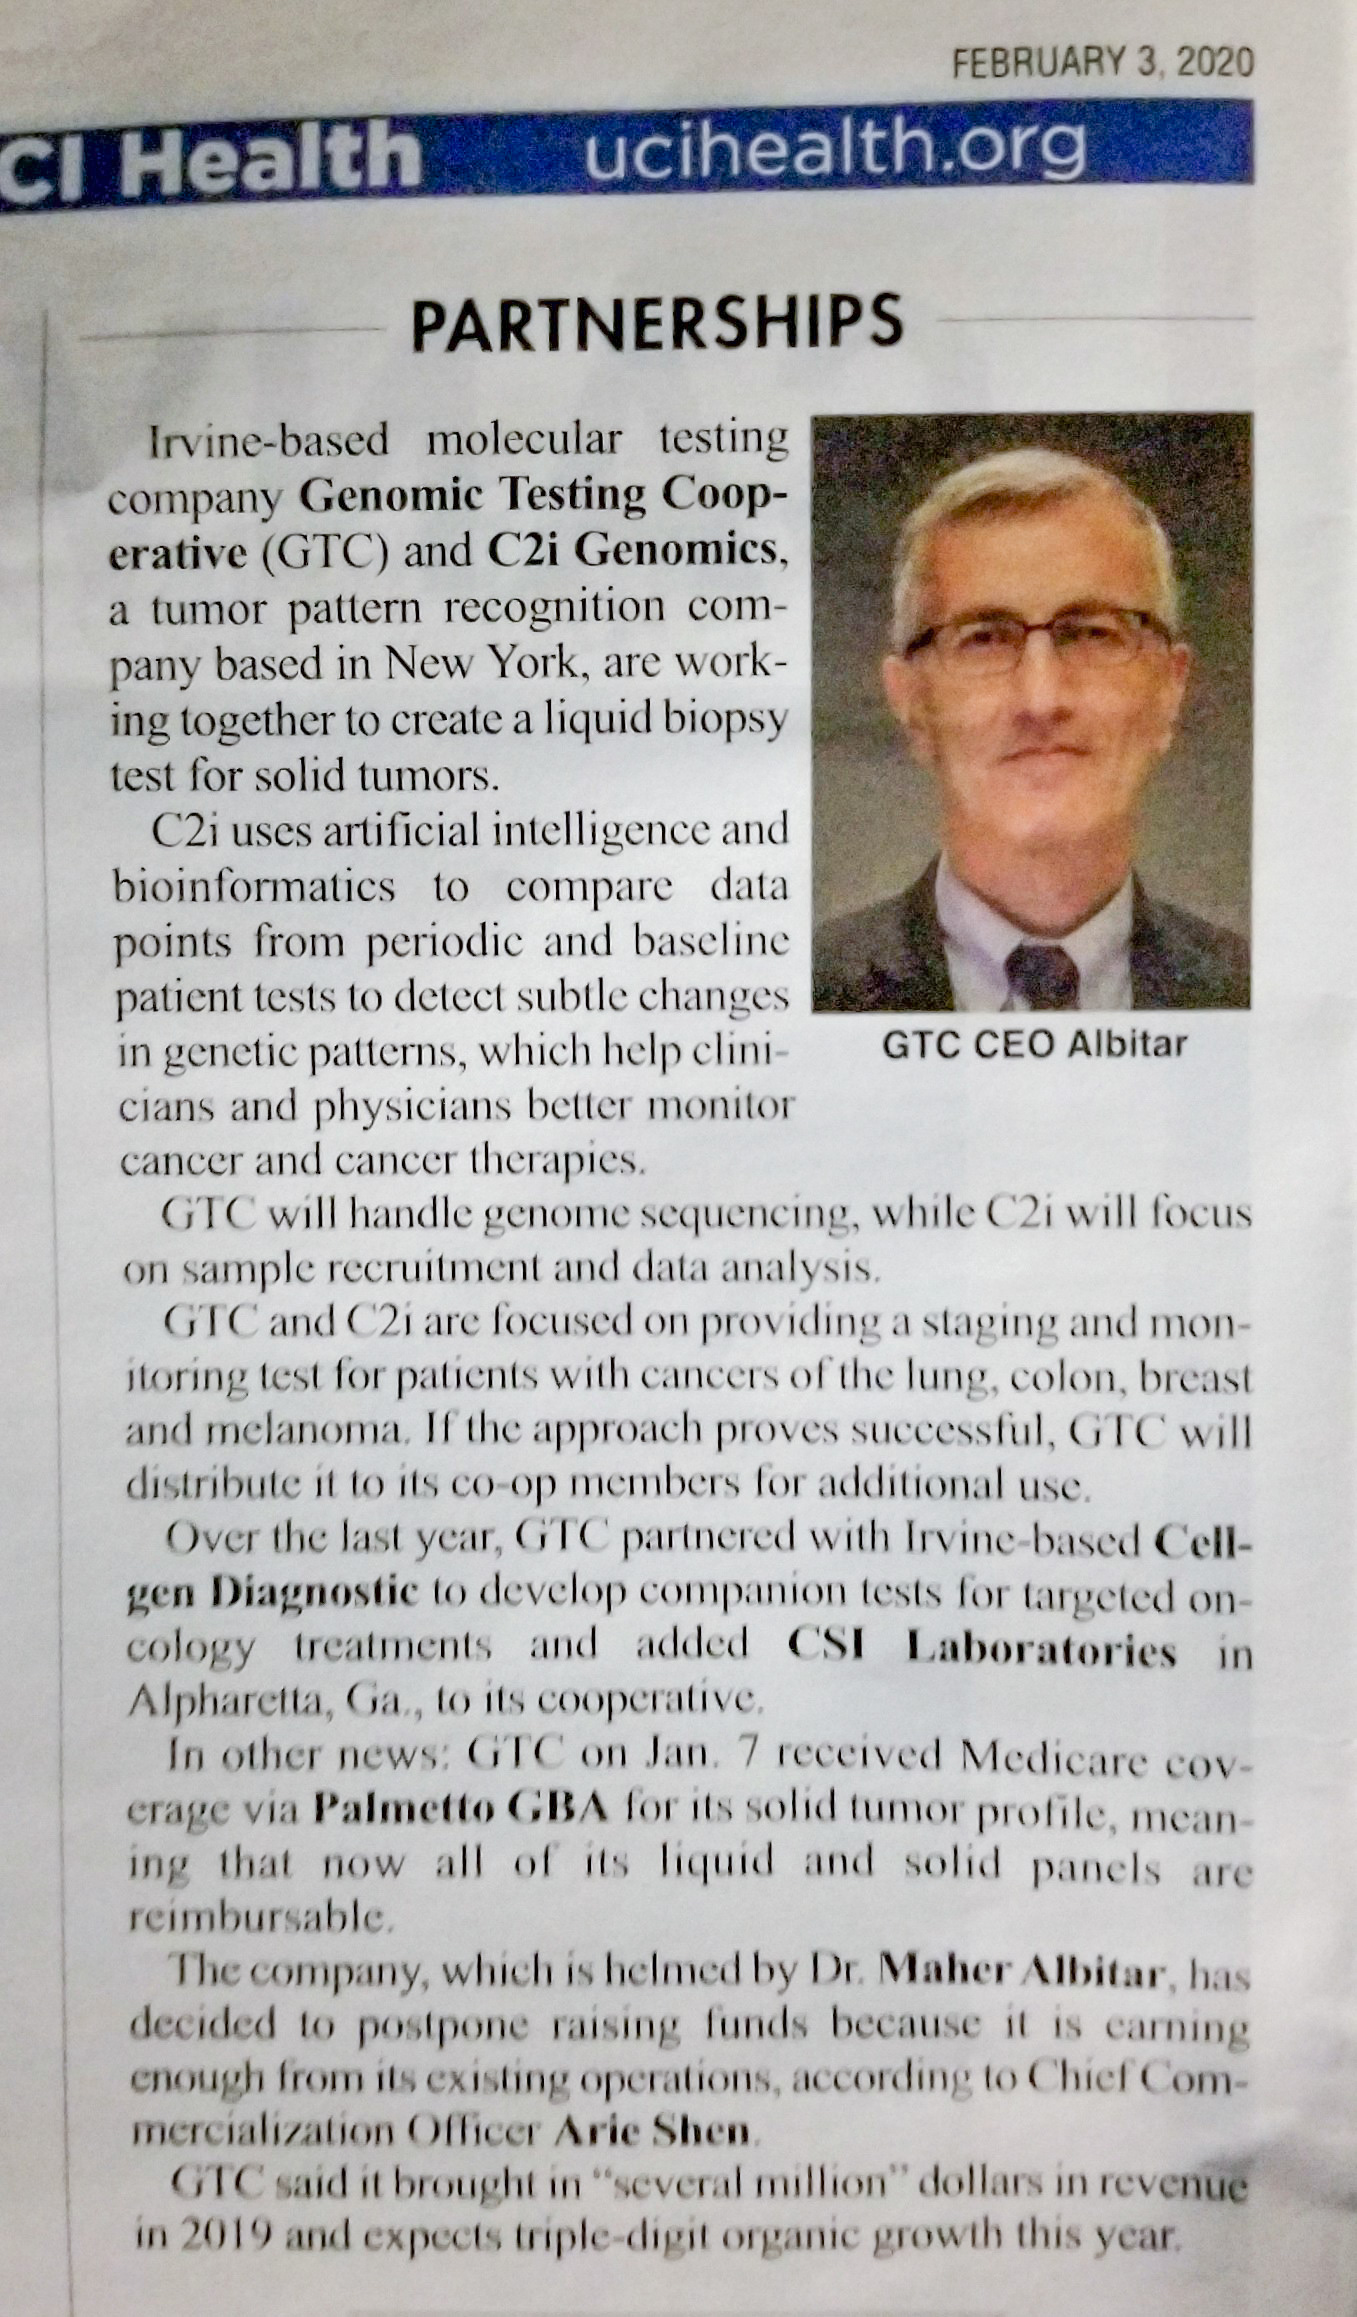 GTC was featured in the Orange County Business Journal again